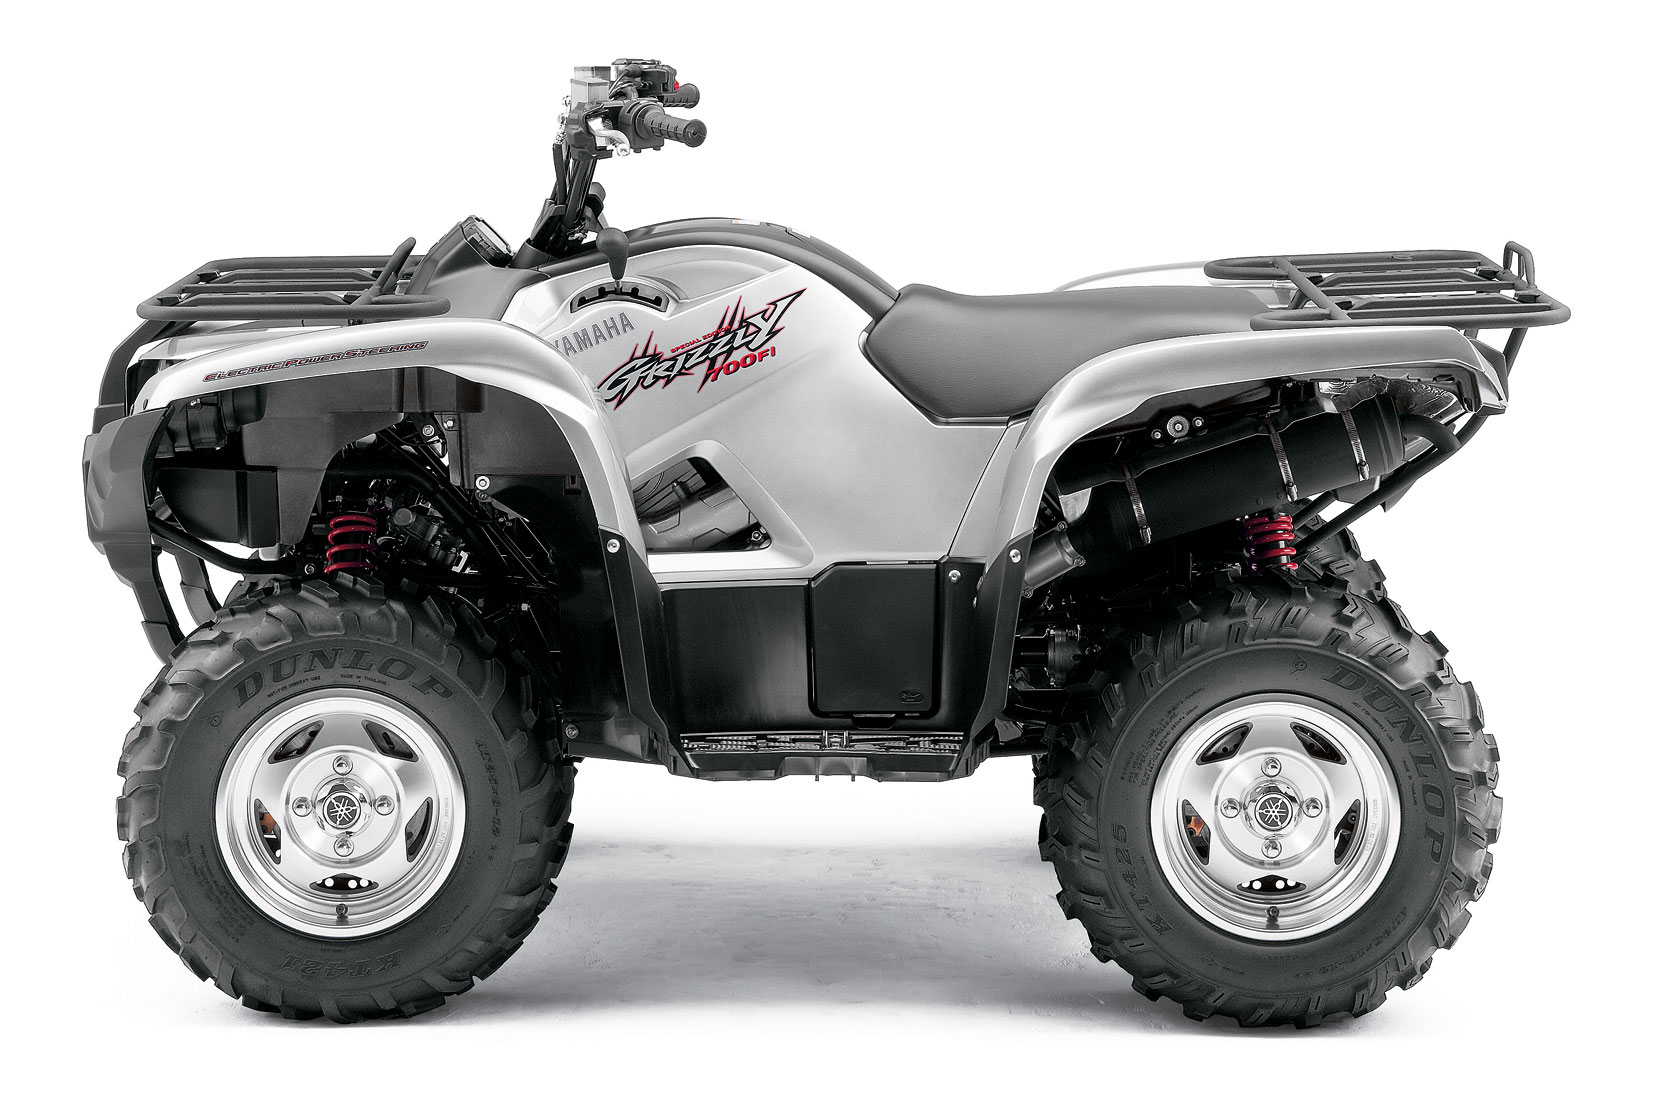 YAMAHA Grizzly 700 FI 4x4 EPS Special Edition Photo Gallery #1/4